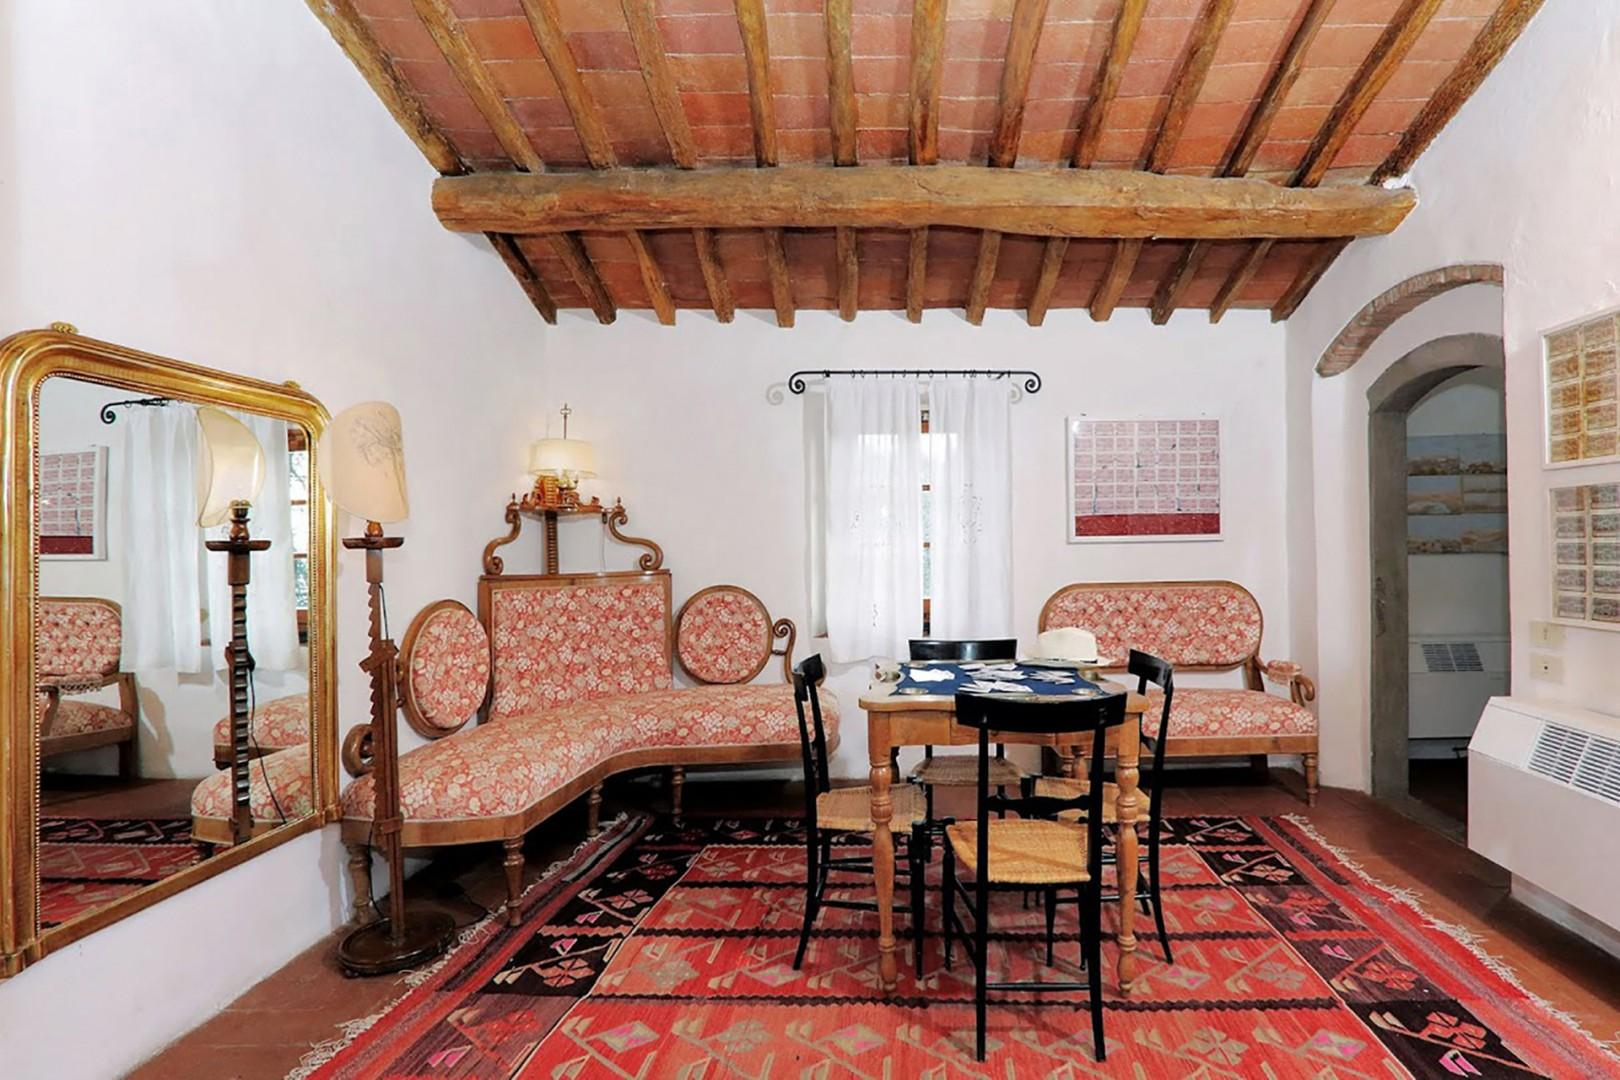 Sitting room with card table outside bedroom 2.